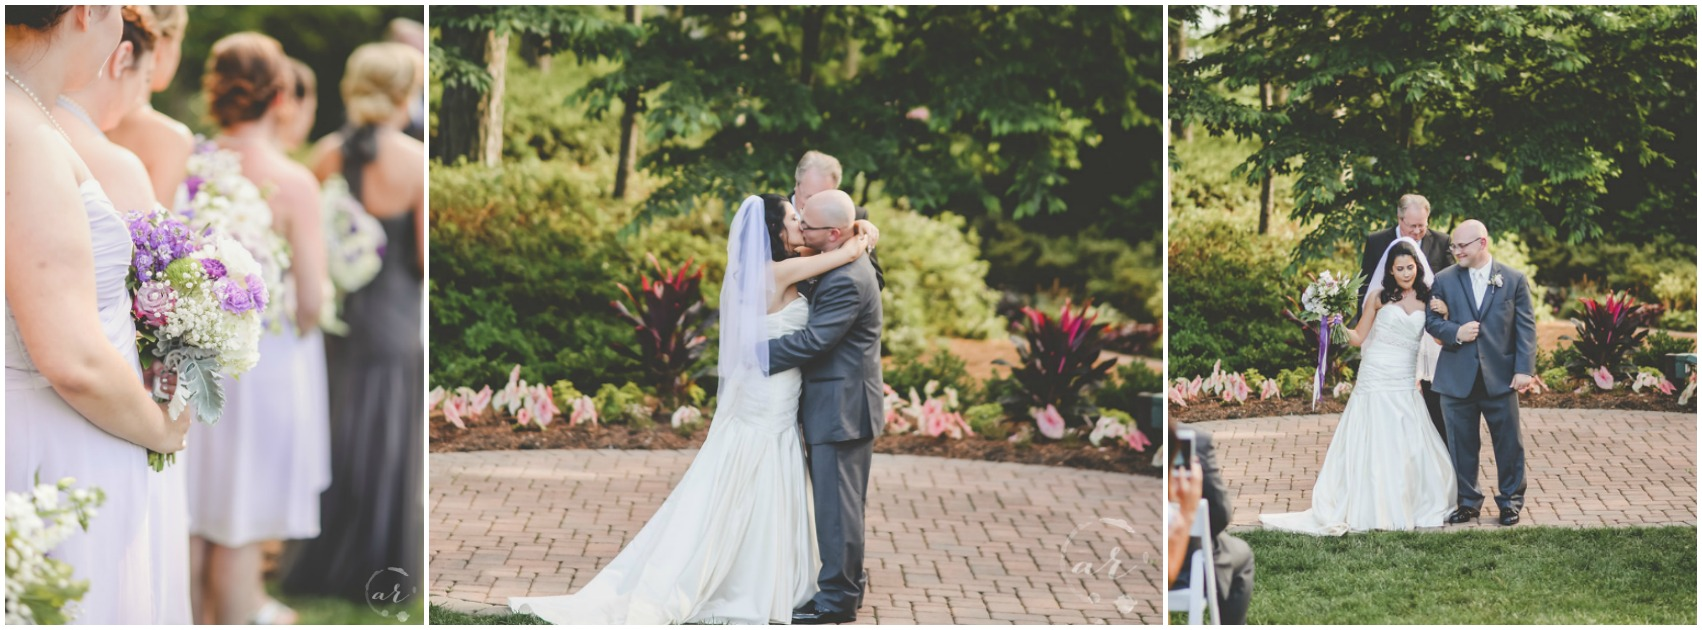 Raleigh Wedding Photographer | Azalea Garden Wedding